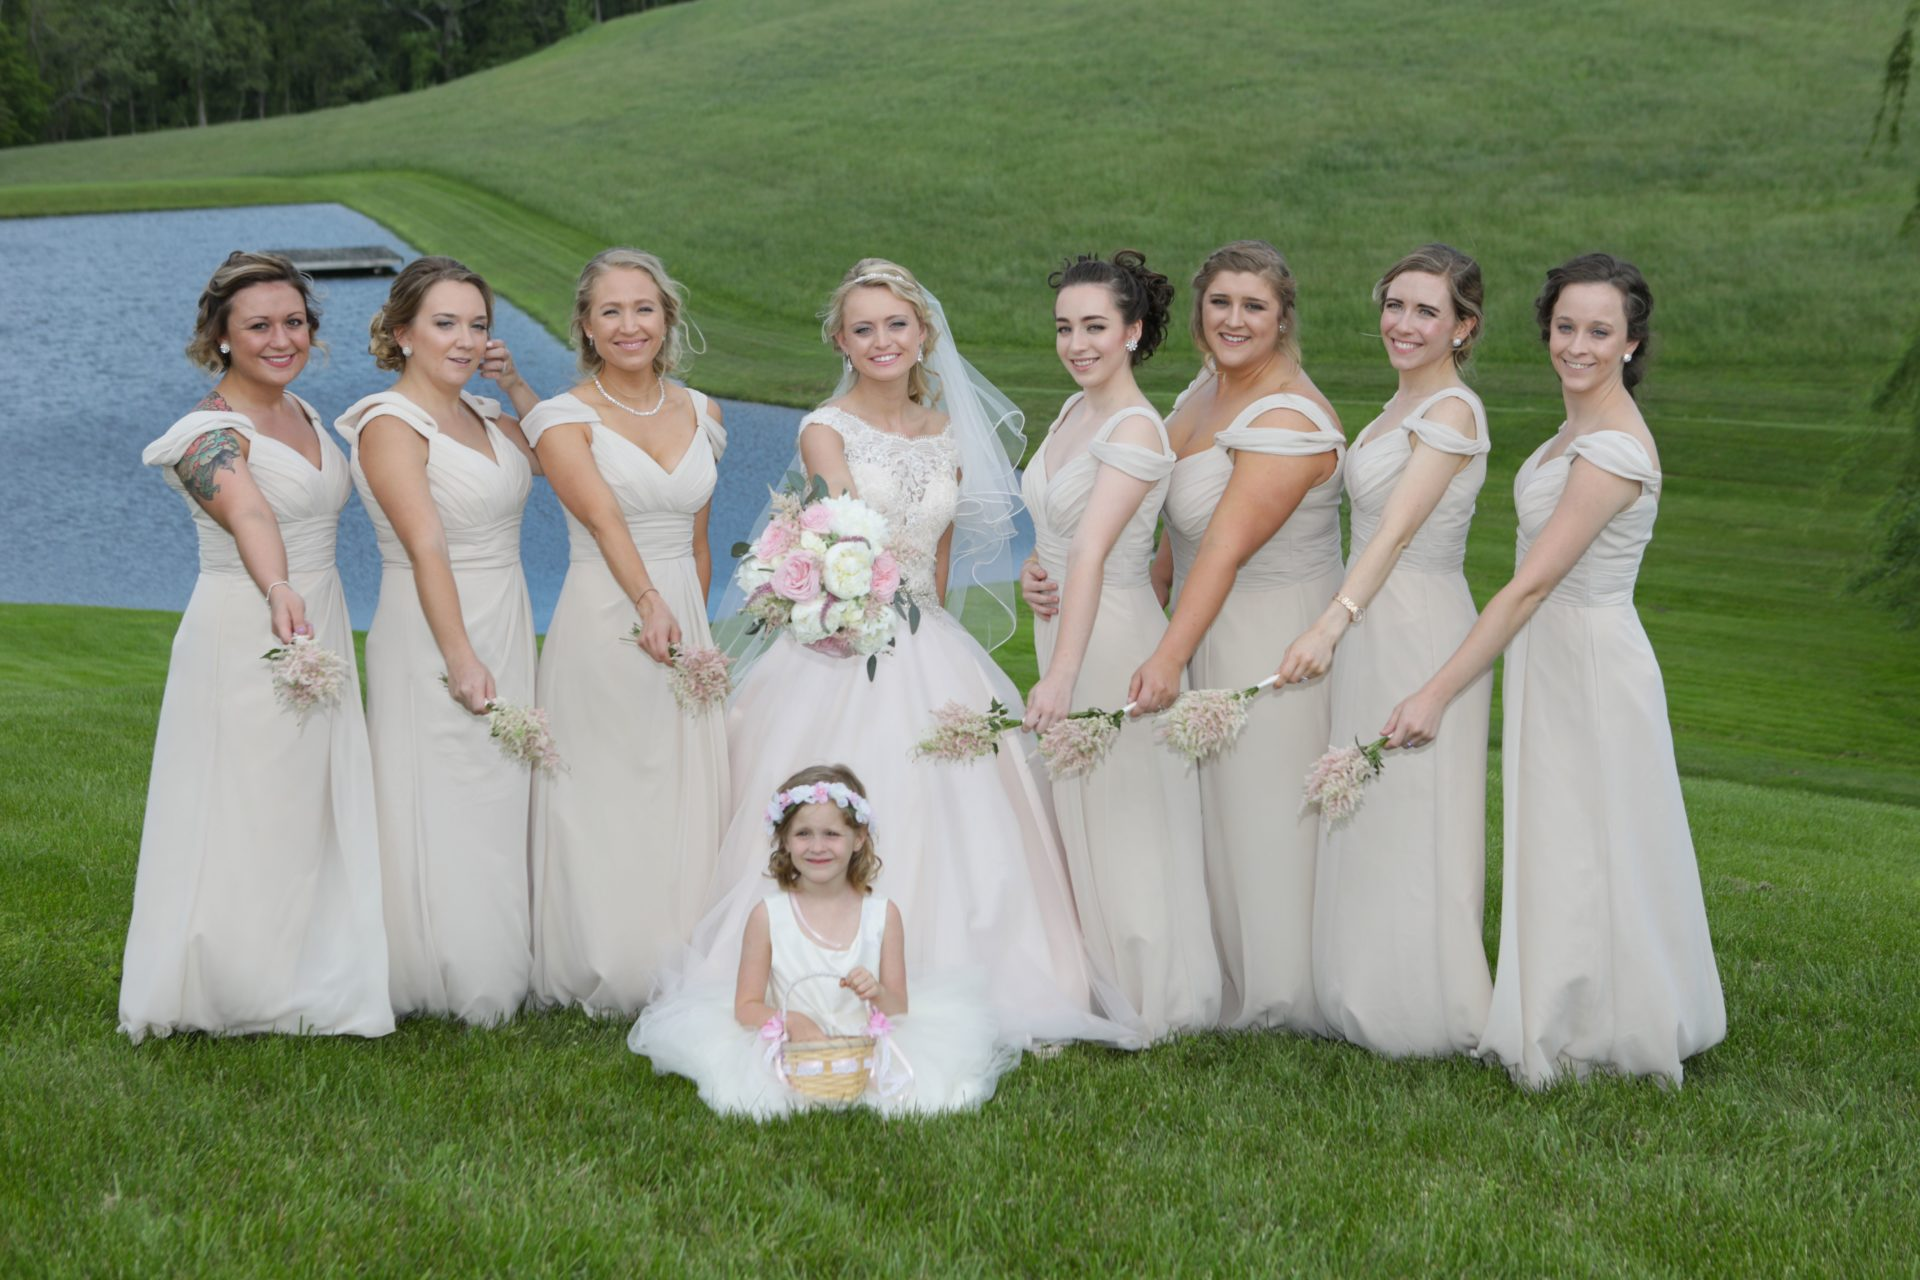 Brides maids by pond before tea party theme wedding at Morningside Inn